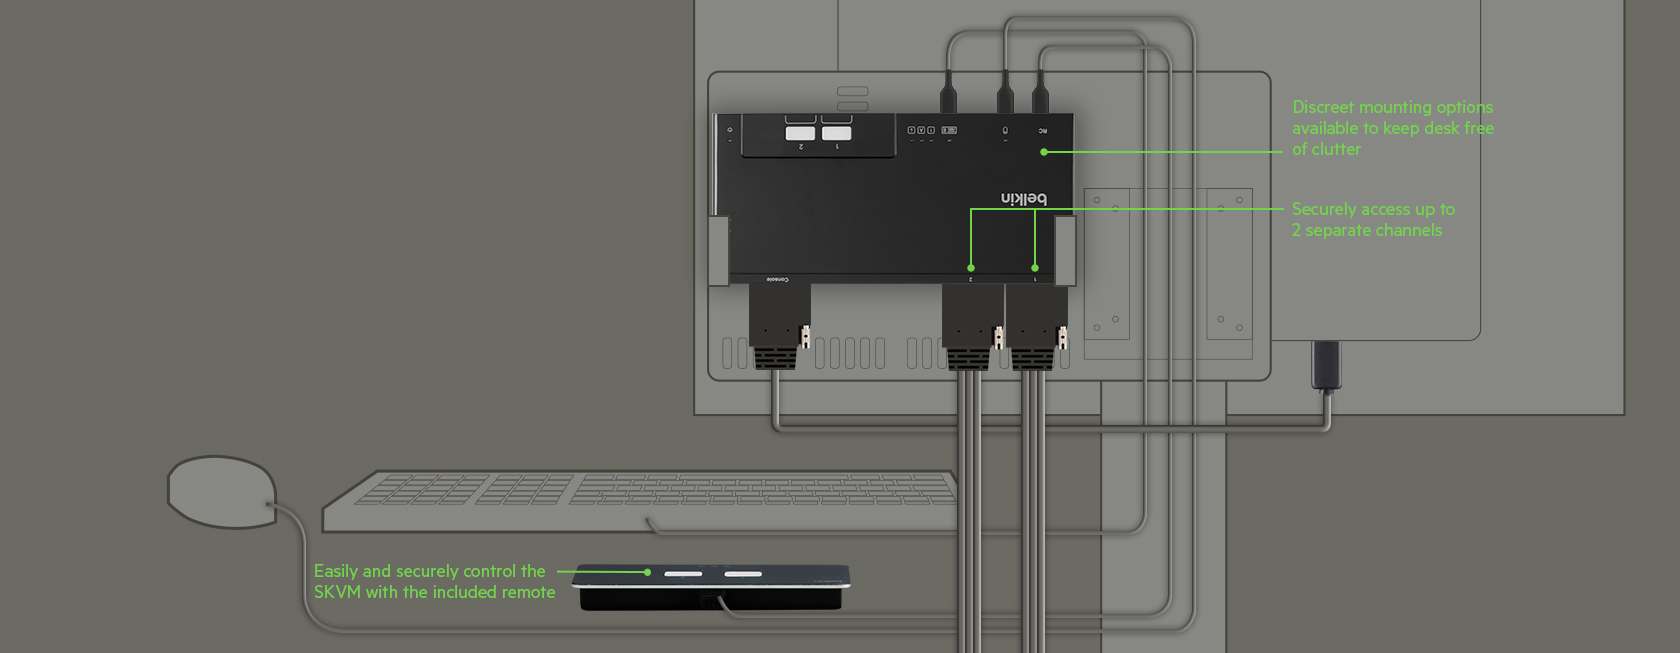 Belkin Modular KVM 2-Port Diagram